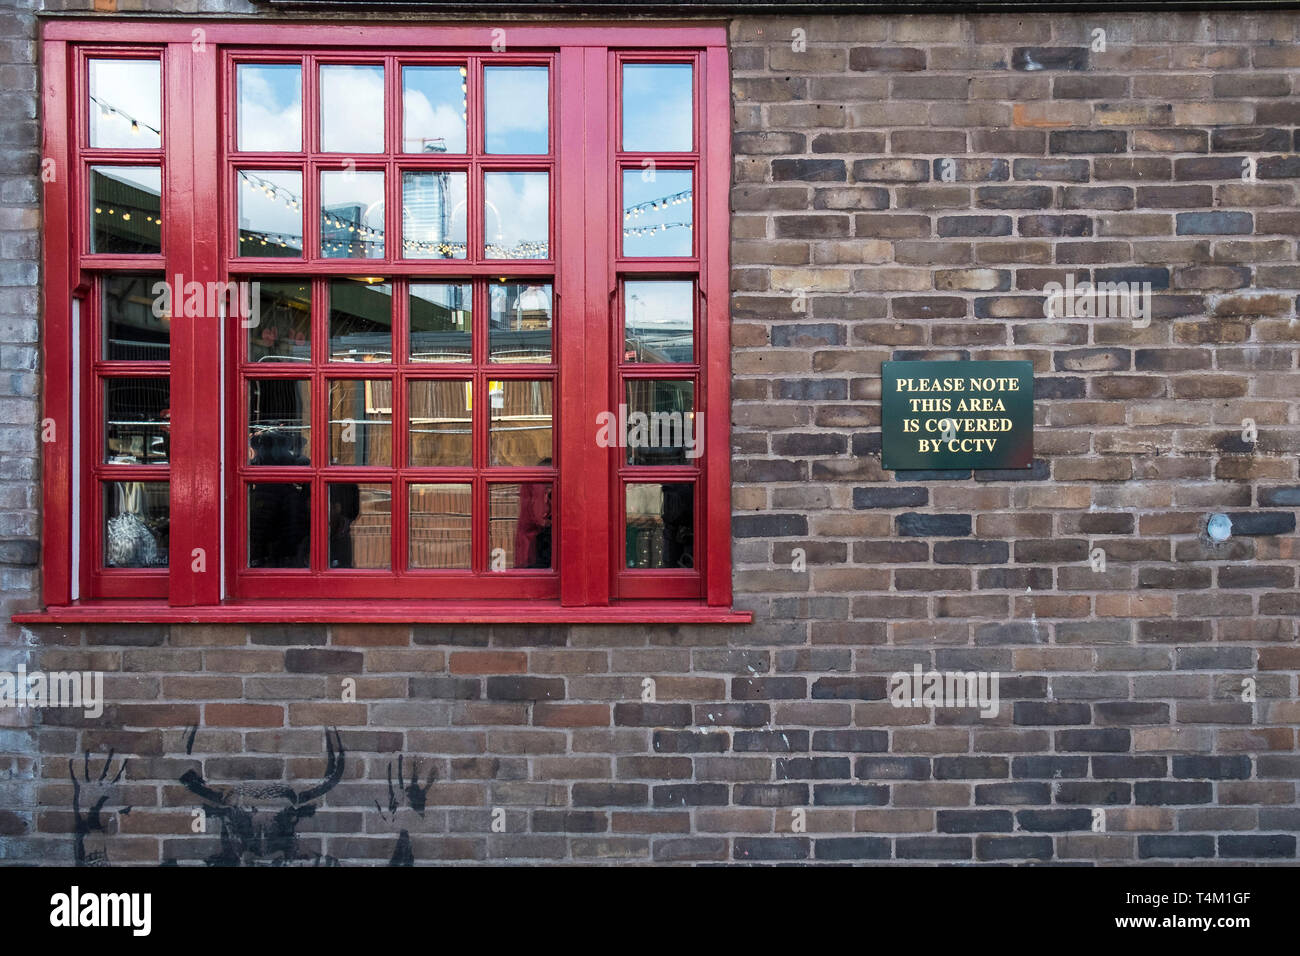 A red wooden sash window next to a sign warning CCTV coverage. - Stock Image